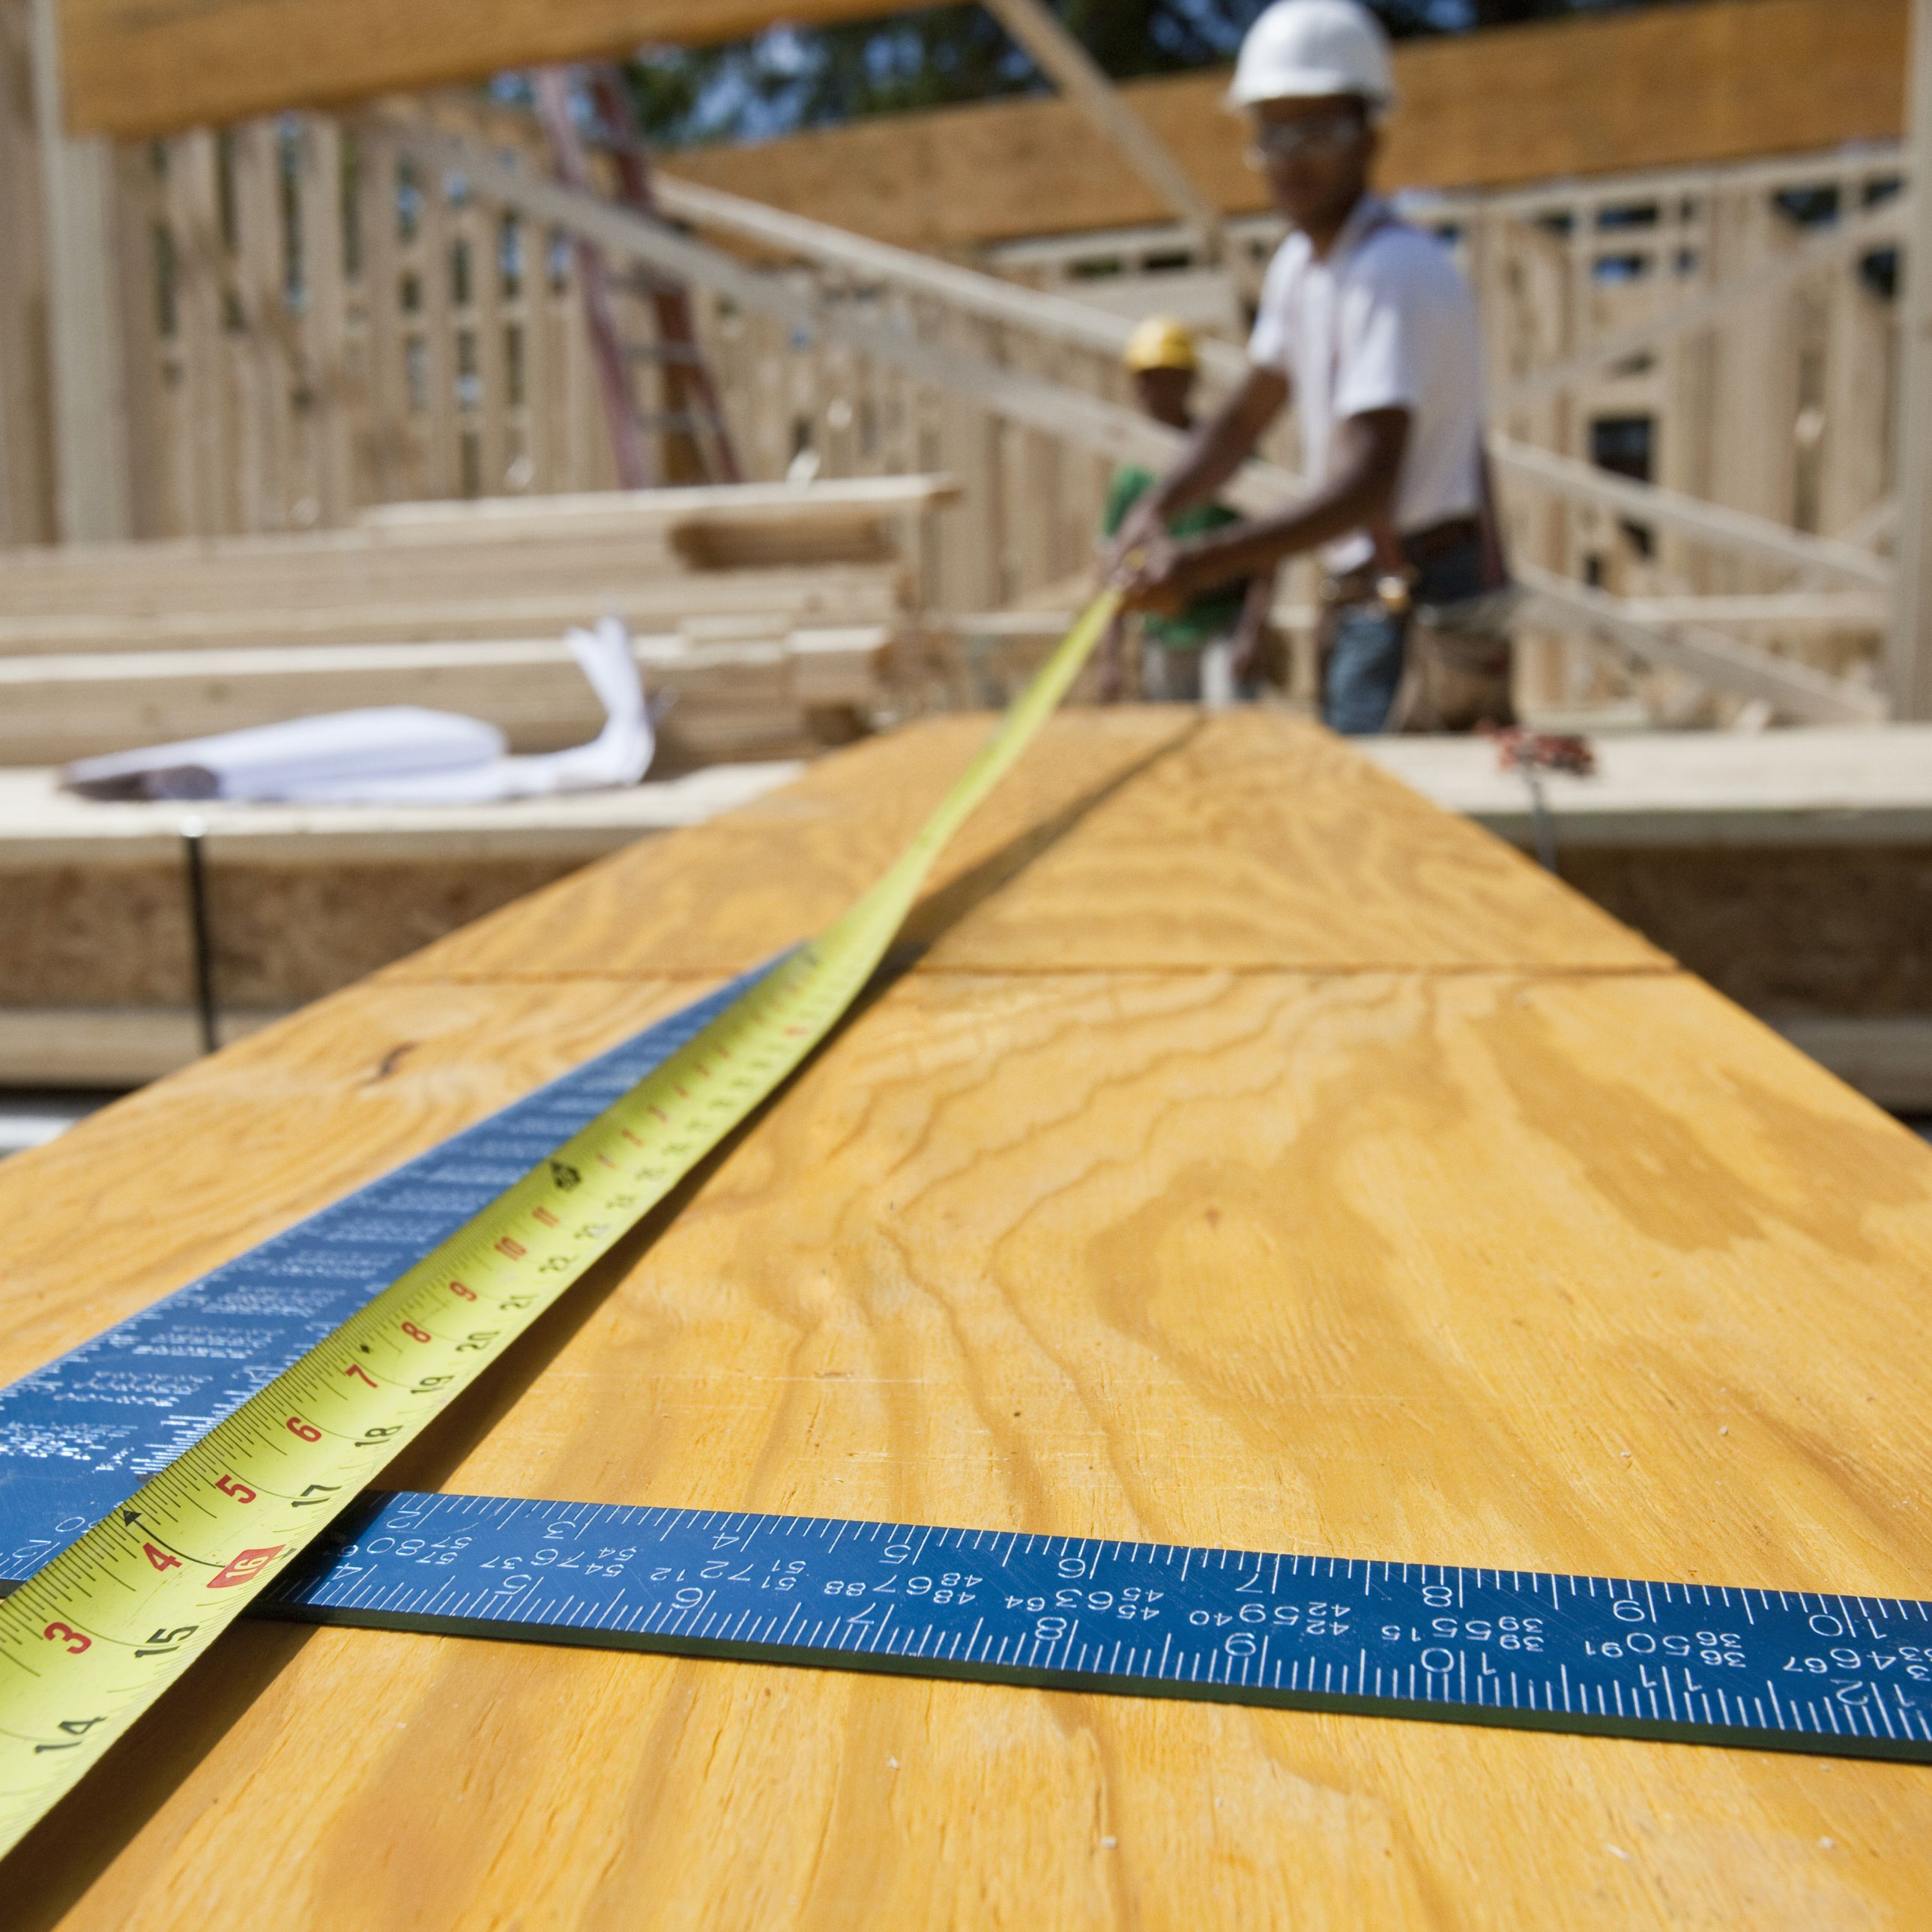 Using Microlam or LVL (Laminated Veneer Lumber)